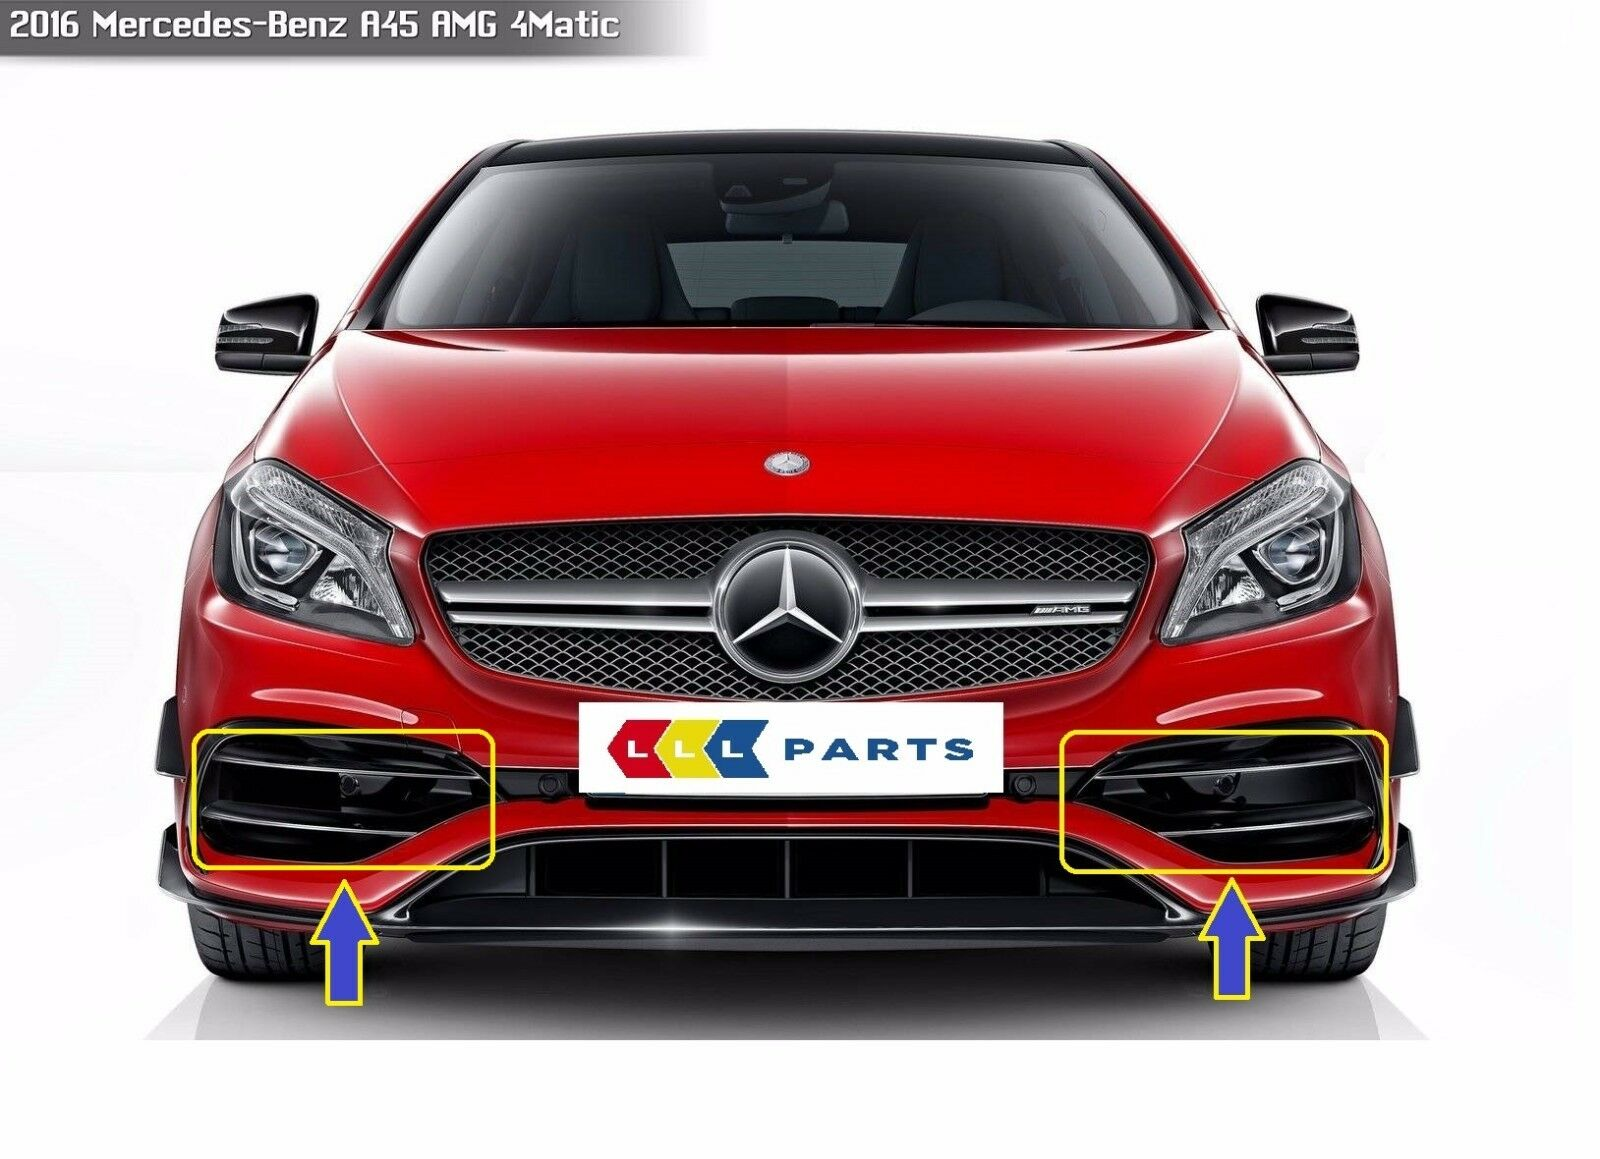 New genuine mercedes benz mb a45 class 2015 w176 amg for Genuine mercedes benz parts